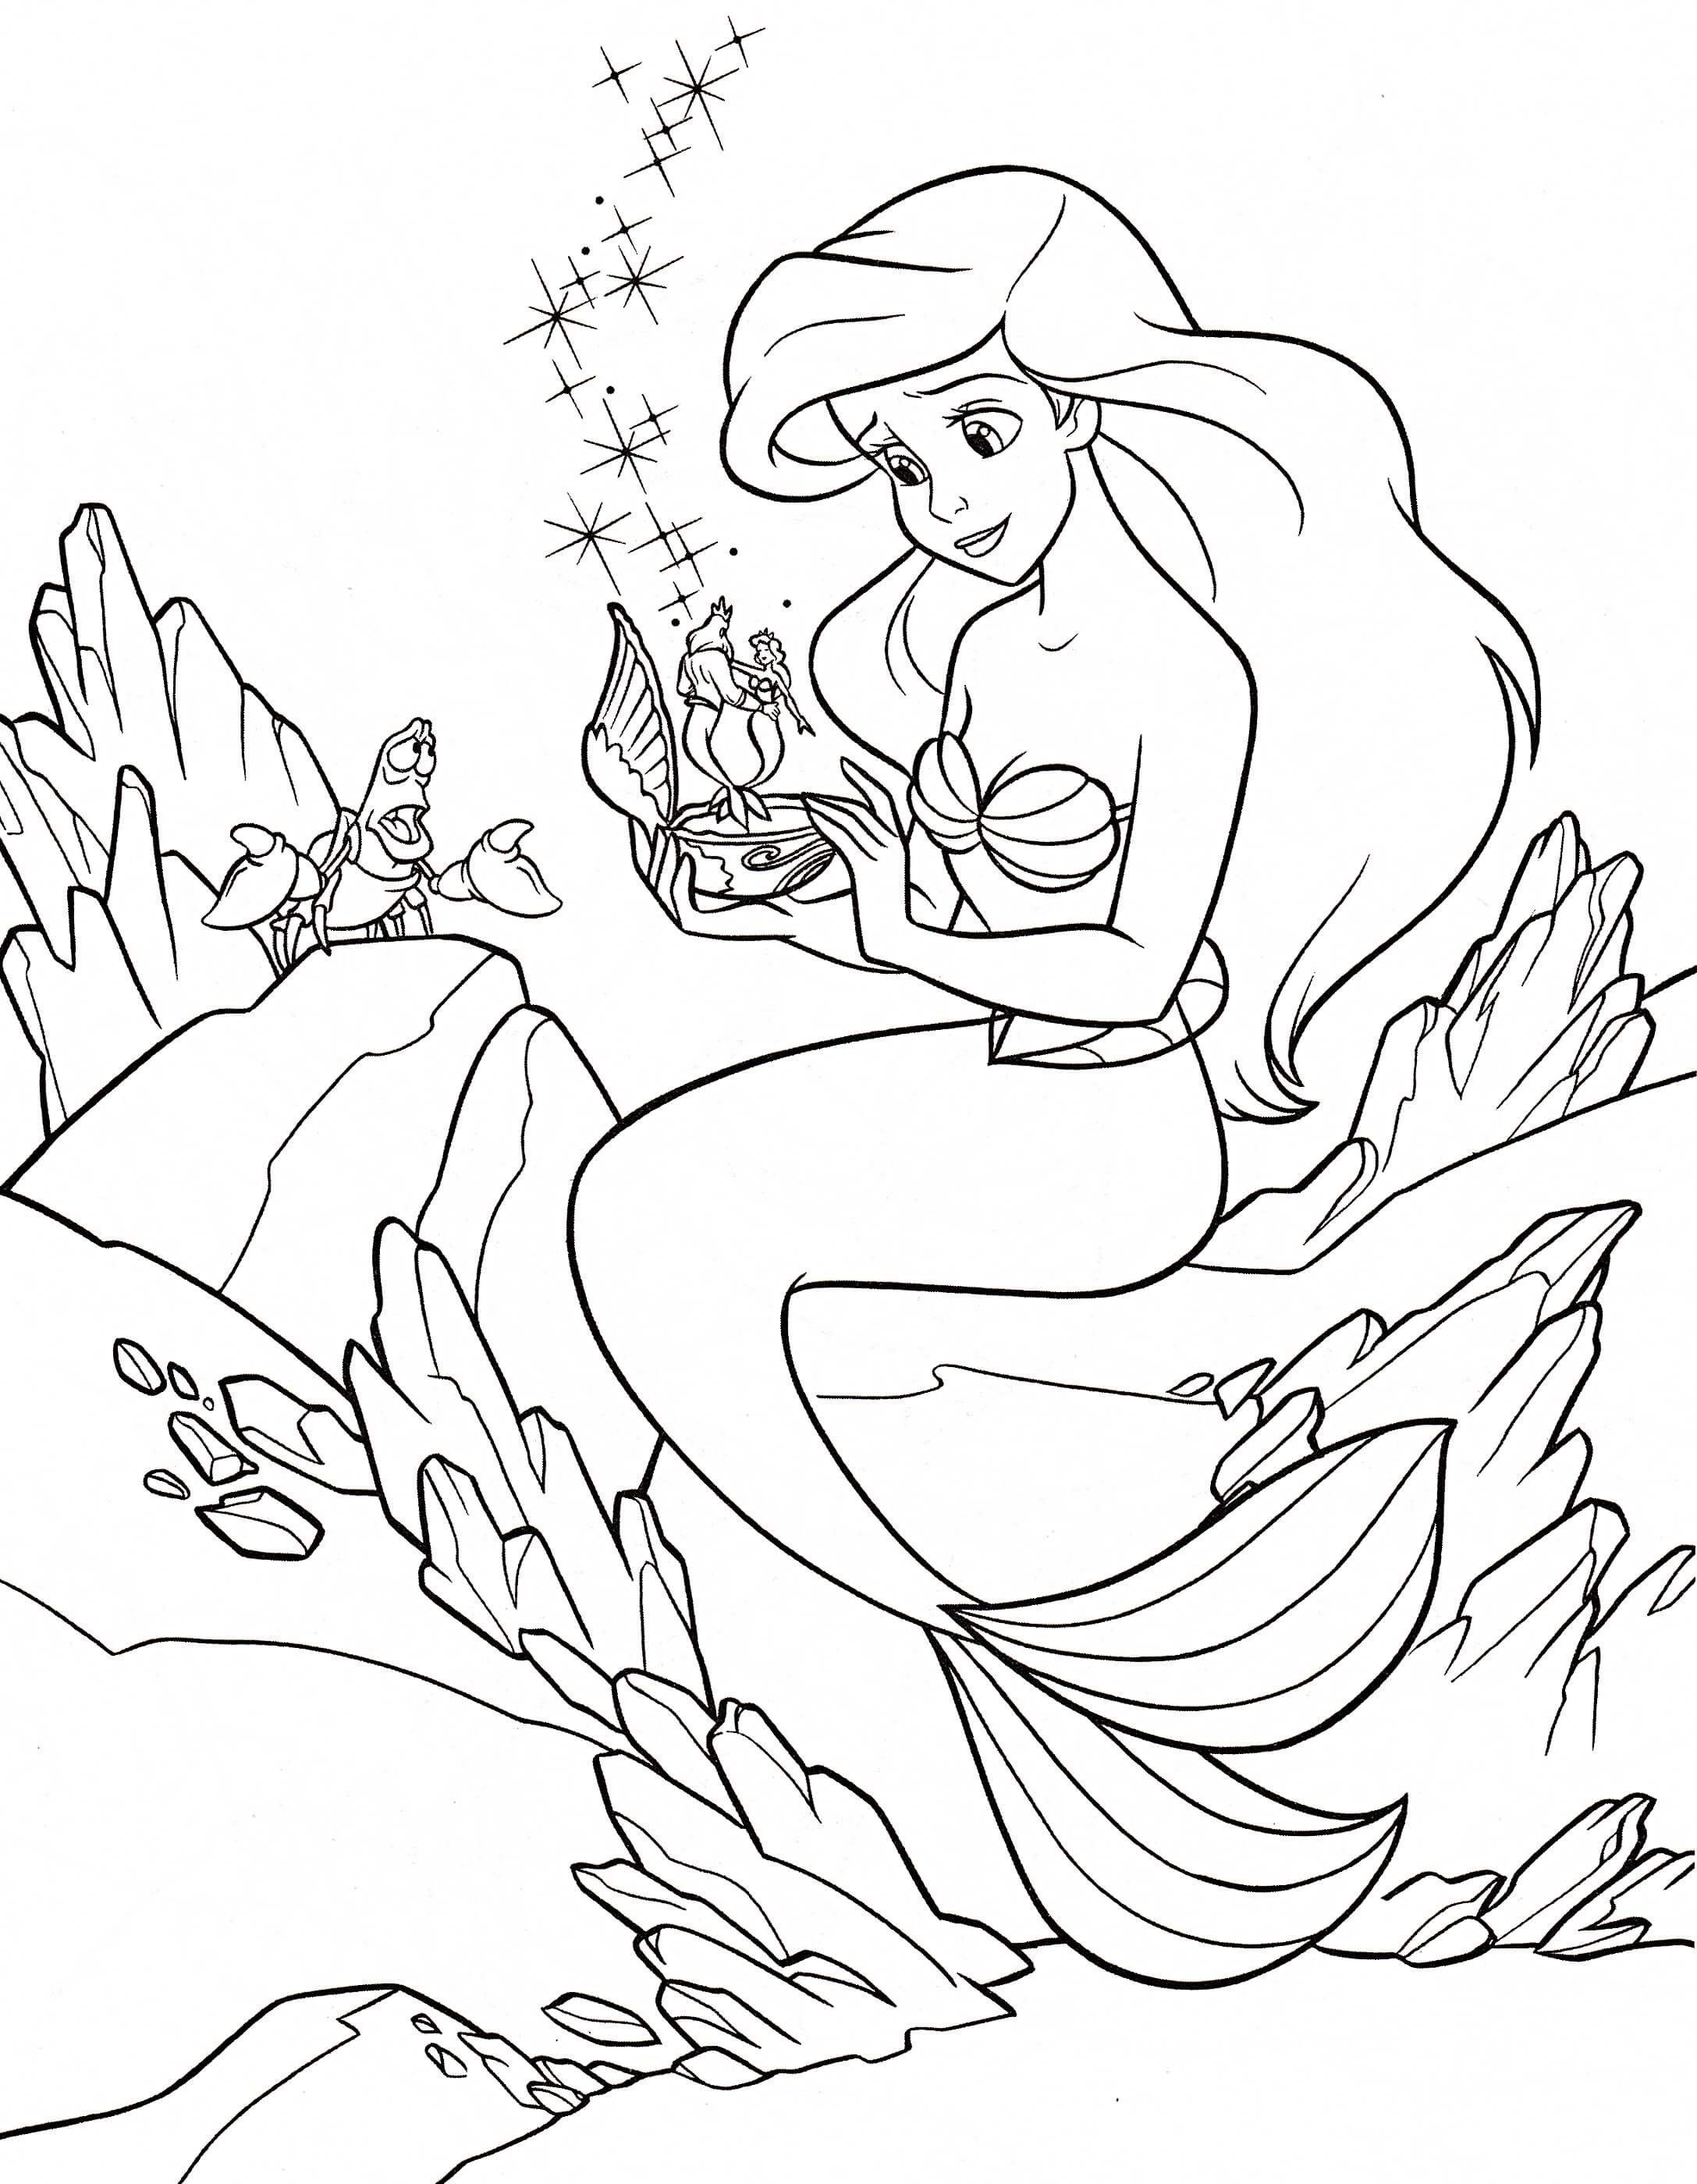 Princess Coloring Pages Printable Pdf Through The Thousands Of Photos On Line Concerning Princes Mermaid Coloring Pages Ariel Coloring Pages Mermaid Coloring